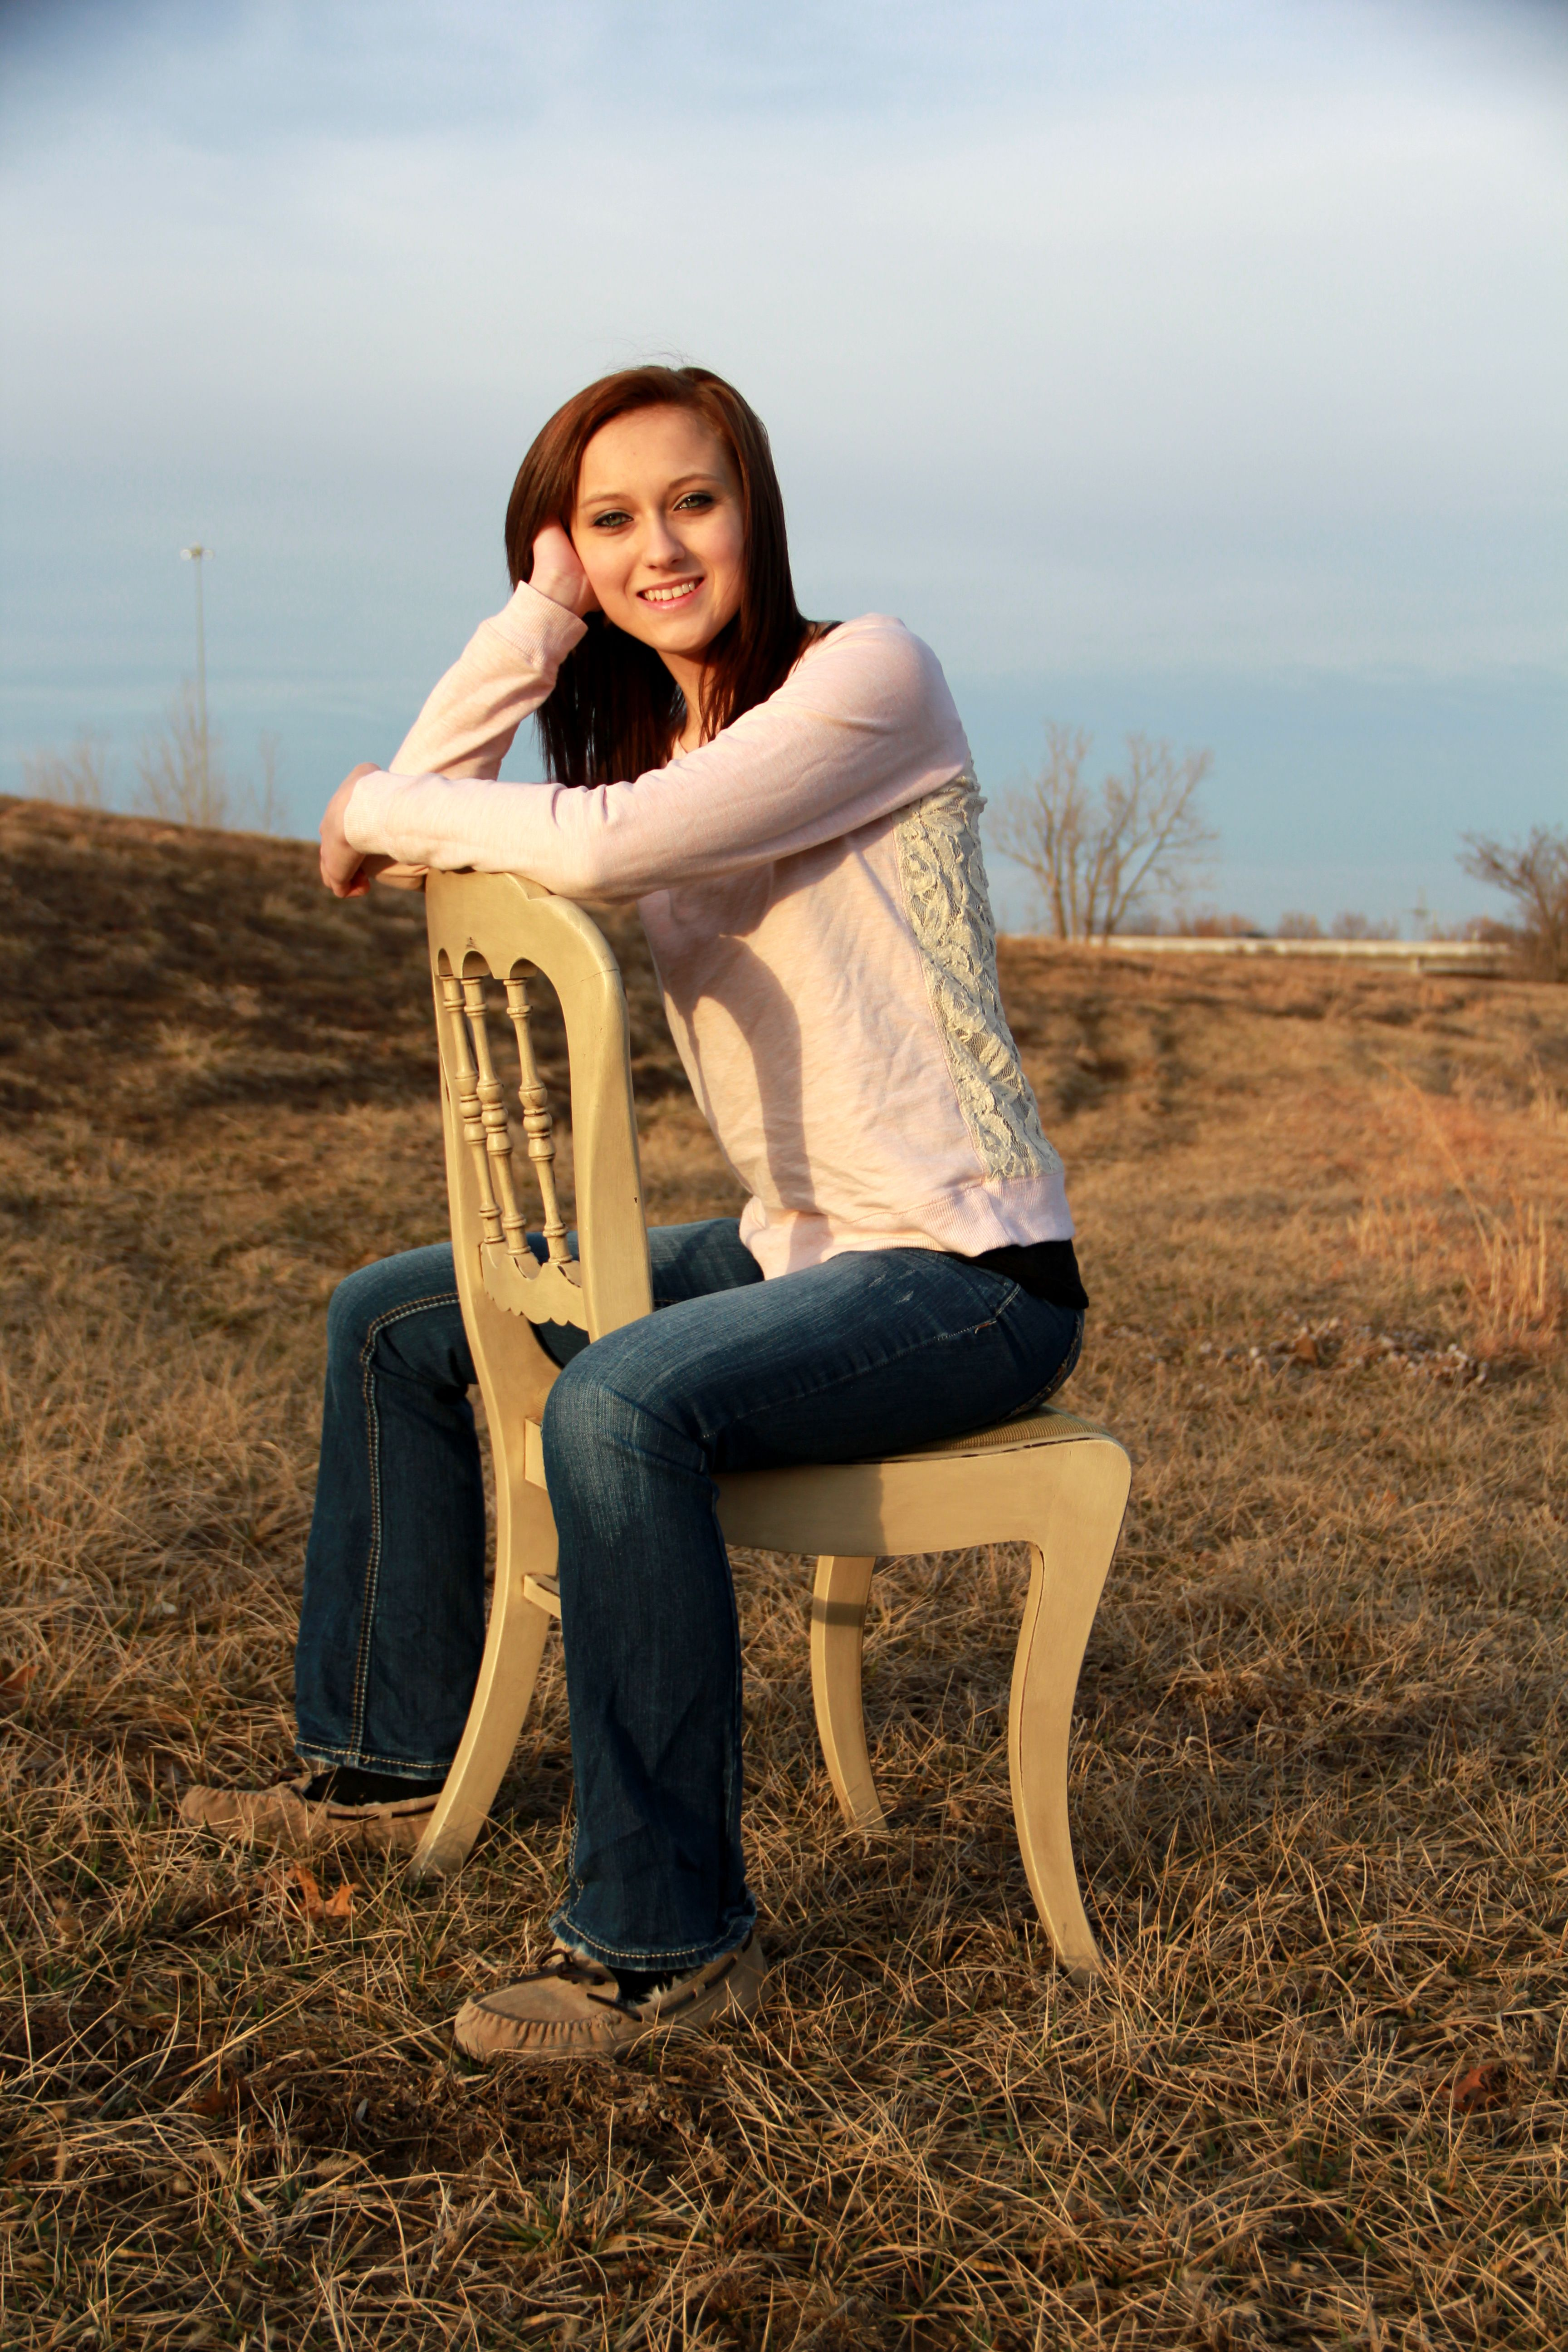 Female Senior picture using a chair as prop. Photograph by Gloria Webster